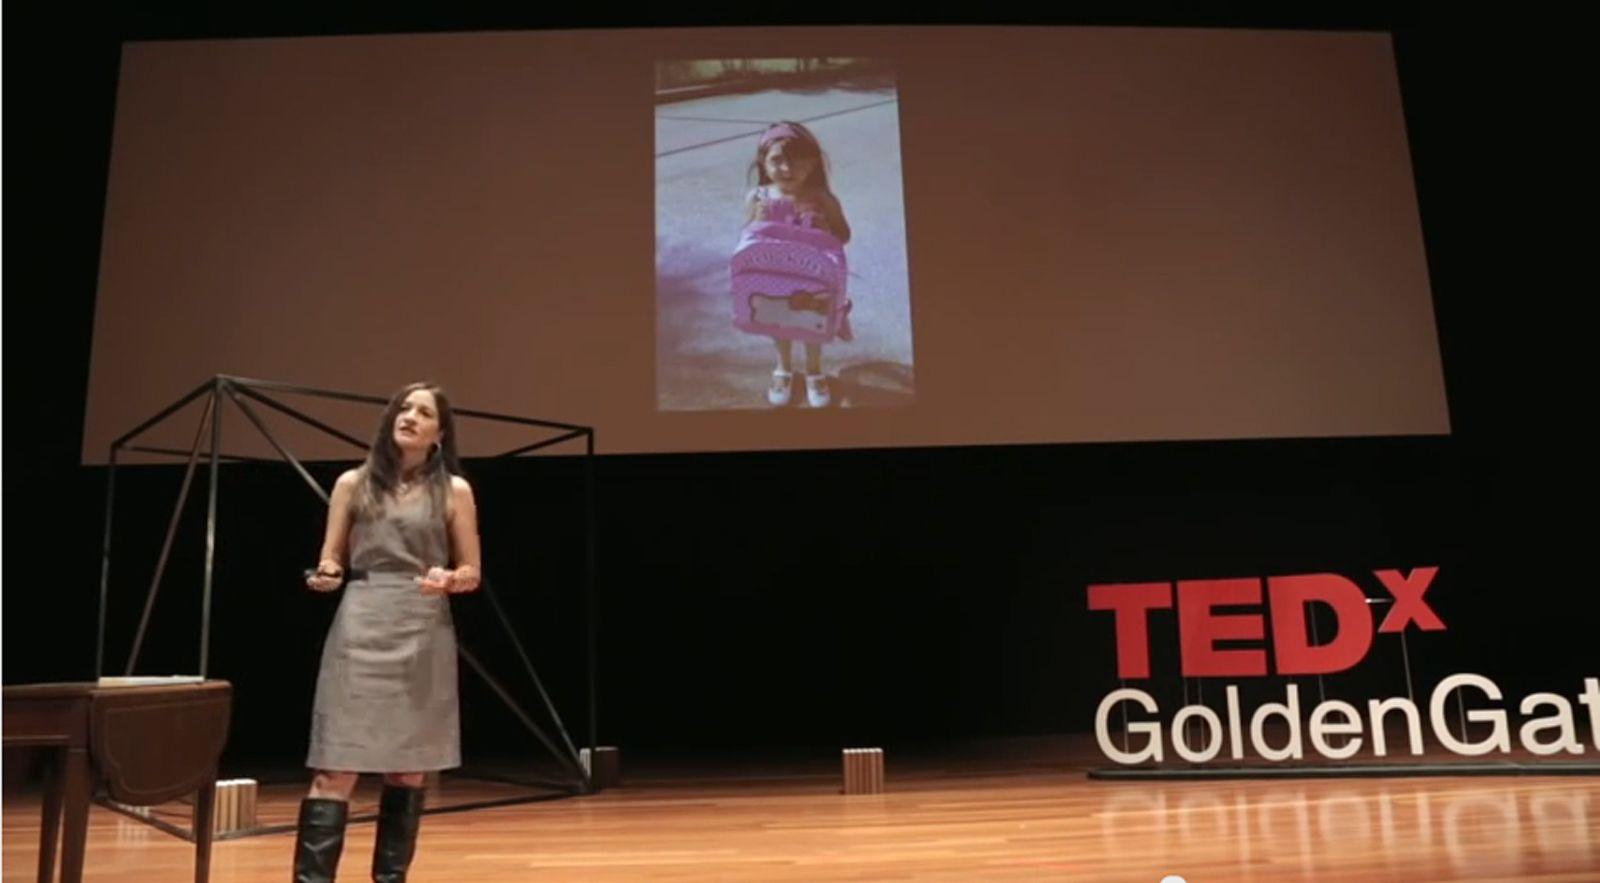 Tedx Talks Self Improvement